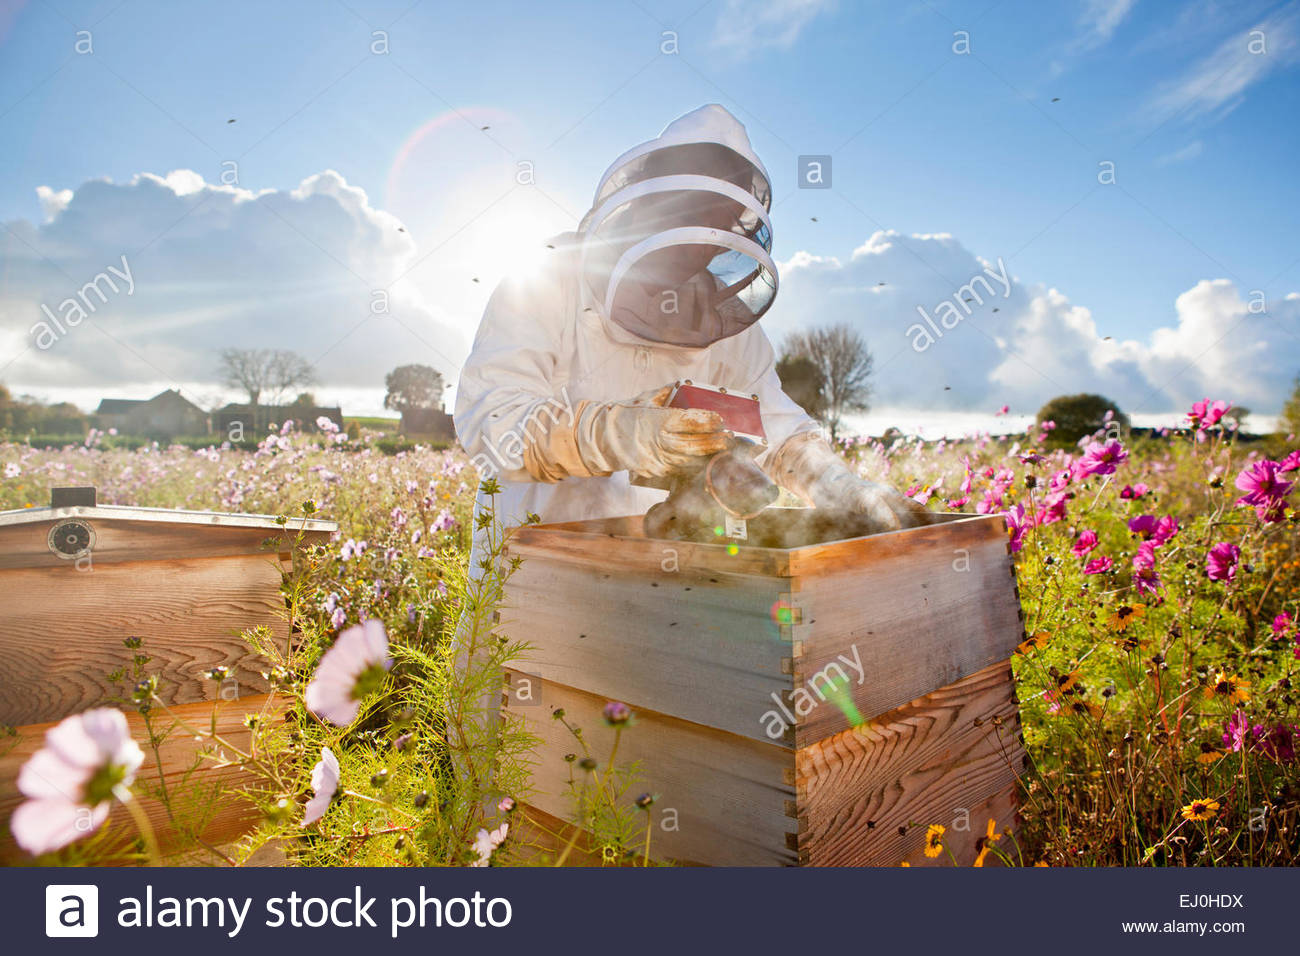 Beekeeper using smoker to check beehives in field full of flowers - Stock Image